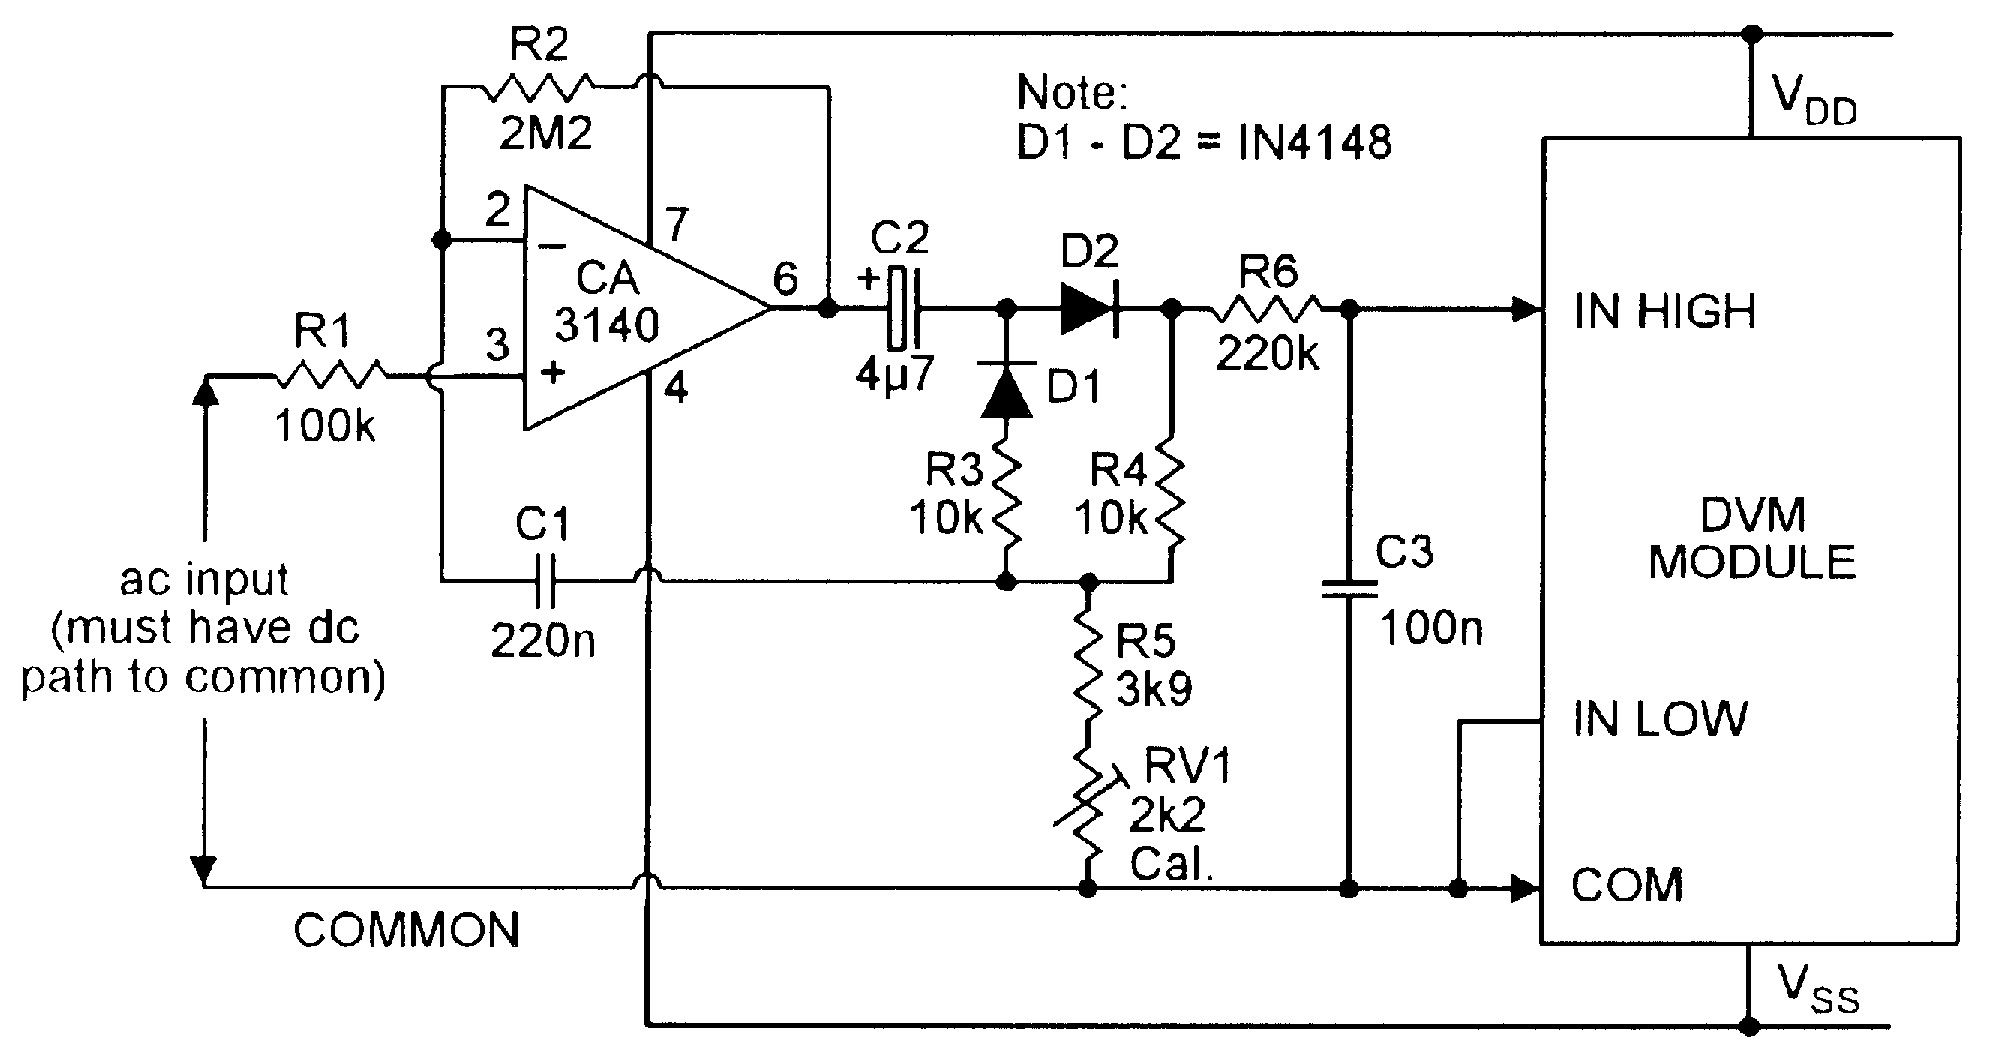 medium resolution of acdc converter circuit diagram electronic circuit diagrams wiring ac dc converter for use with dvm module